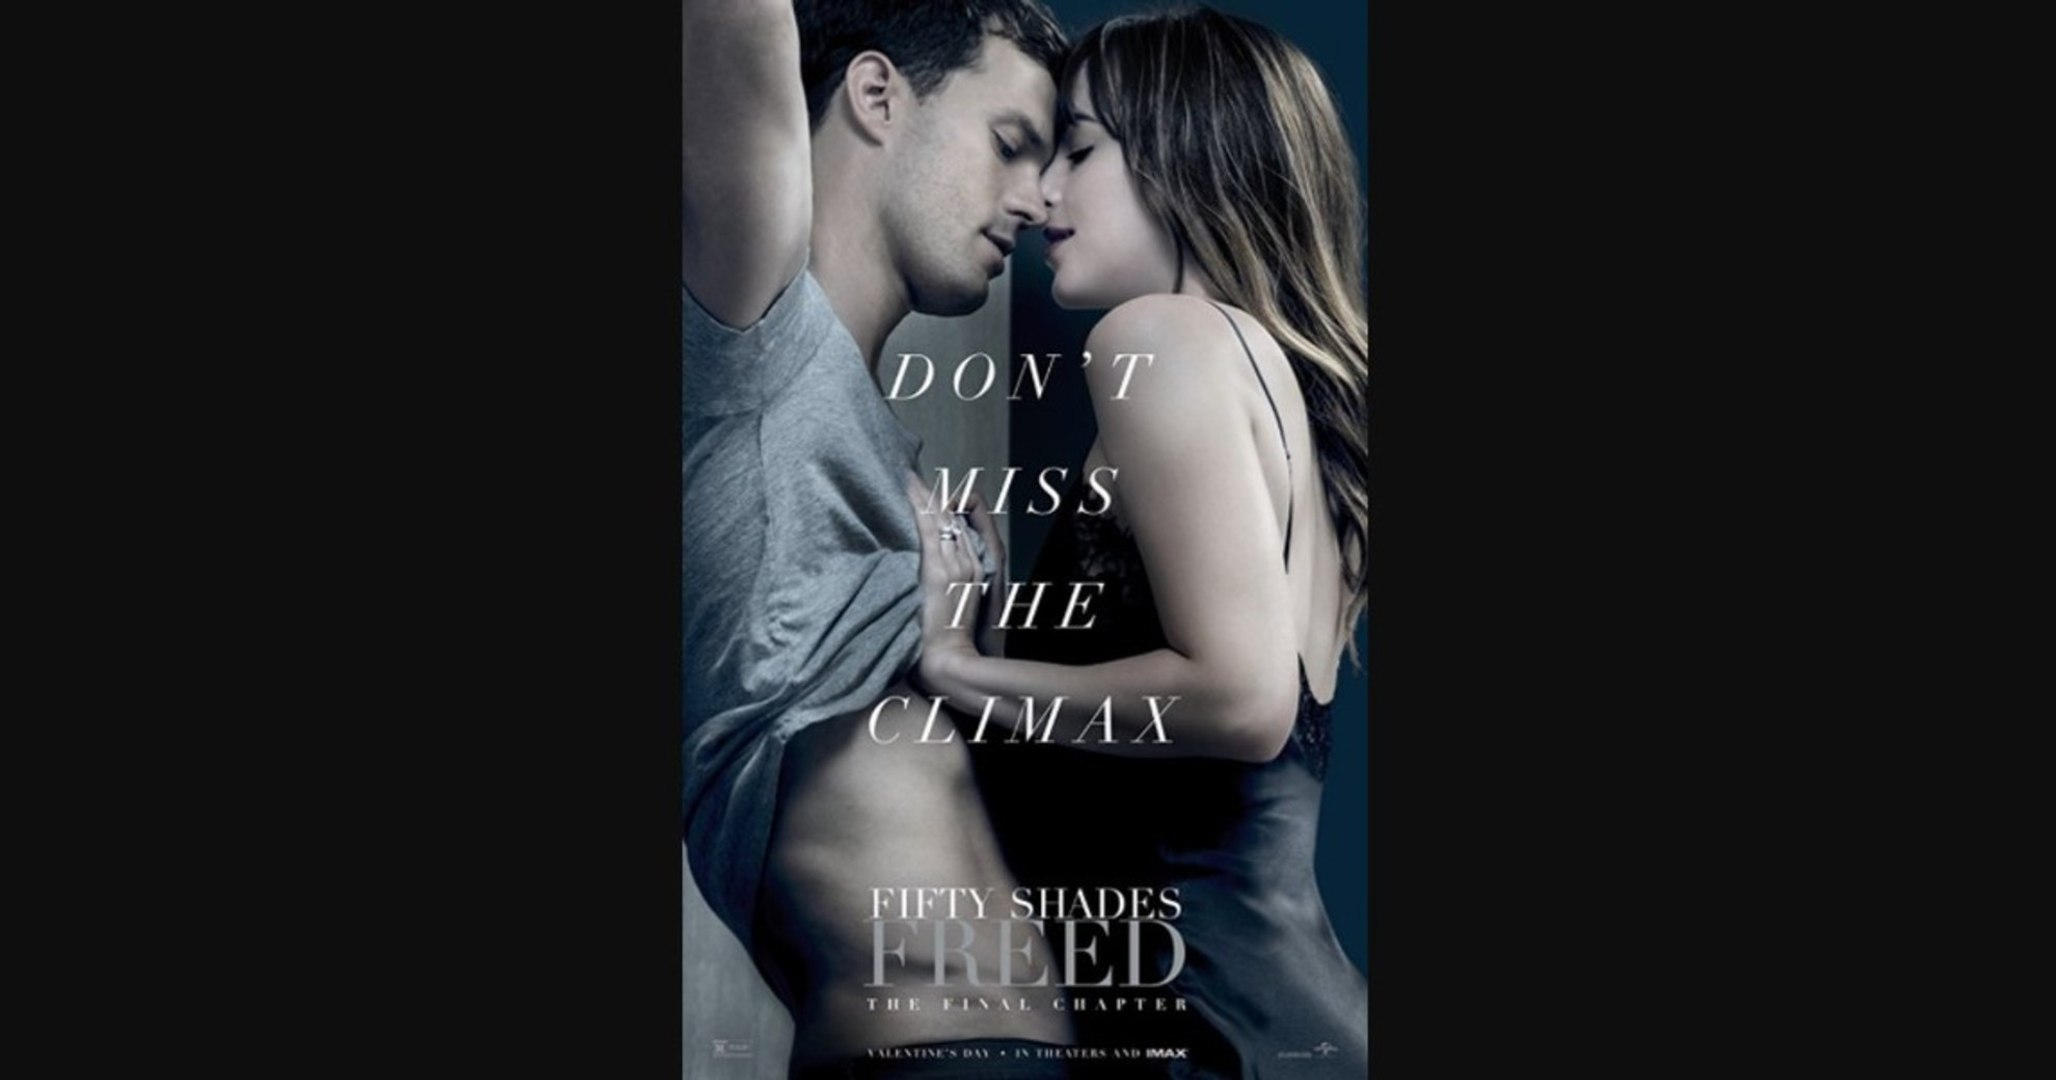 50 shades of freed watch online free full movie